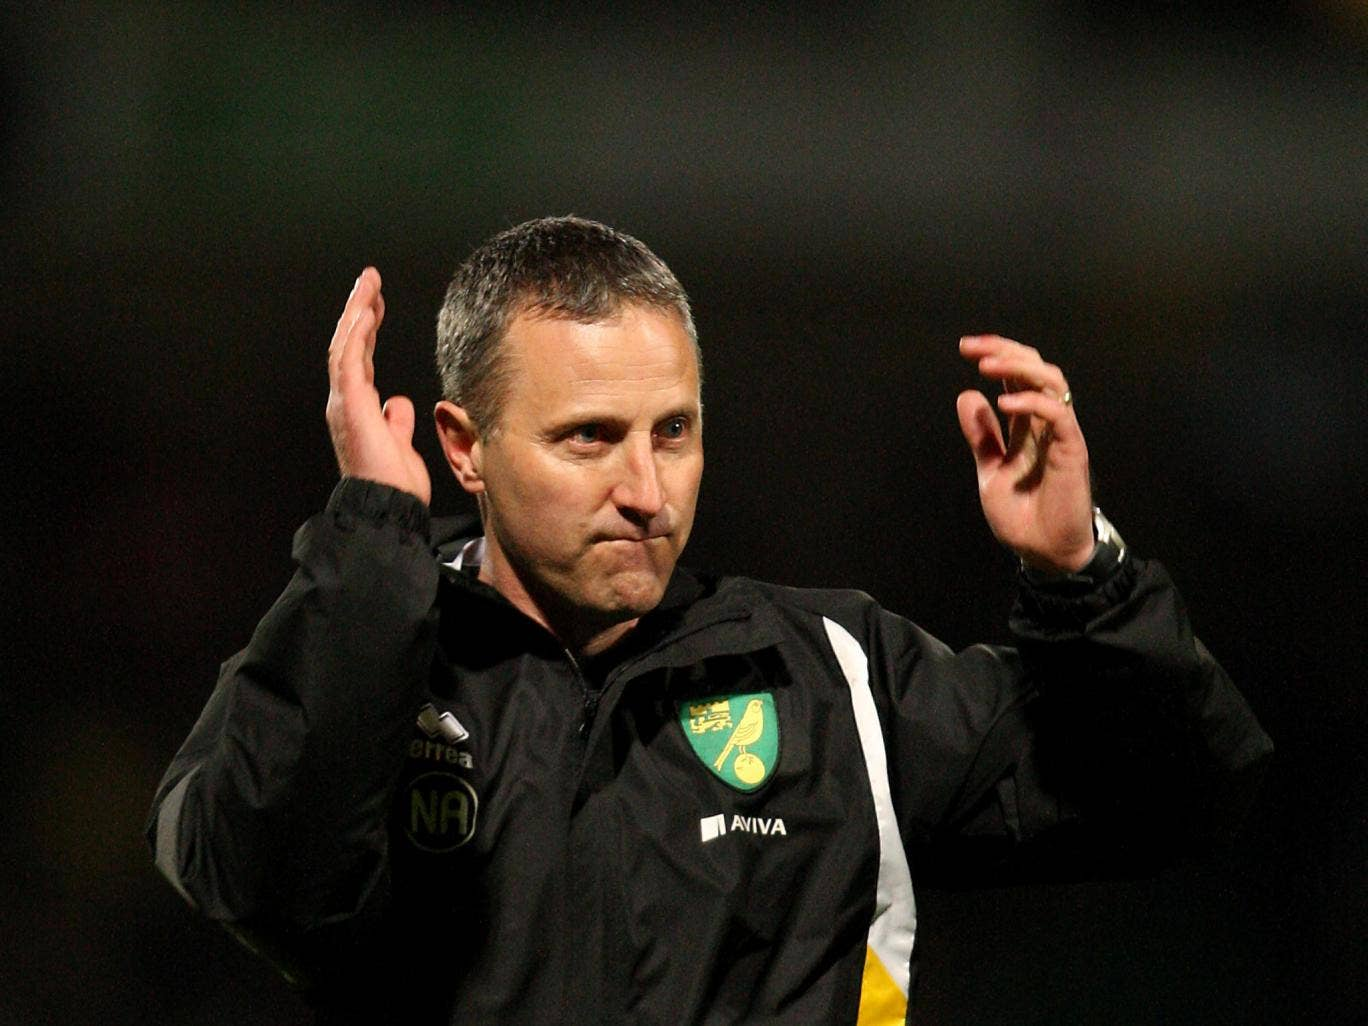 Neil Adams has been given five matches to keep Norwich in the Premier League after Chris Hughton was sacked